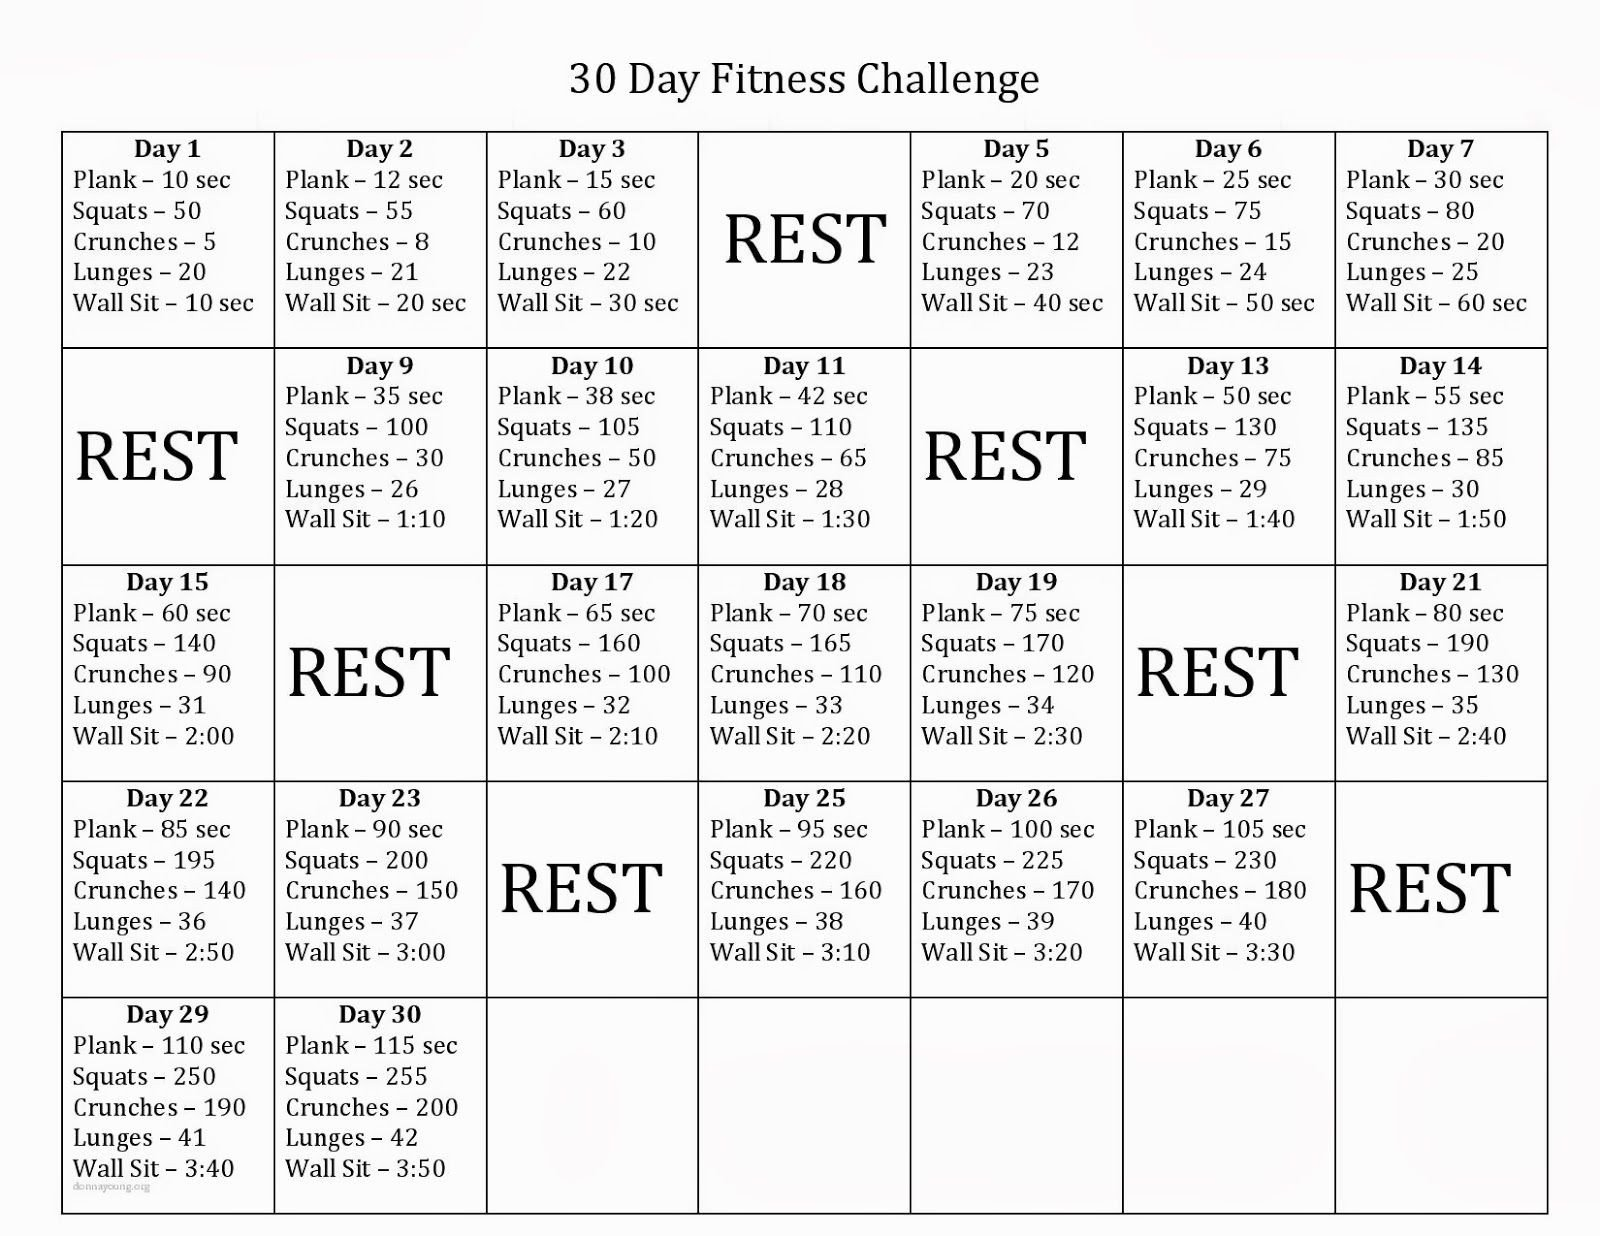 60 Day Workout Plan 30 Day Fitness Challenge Might Make This 60 Days and Do